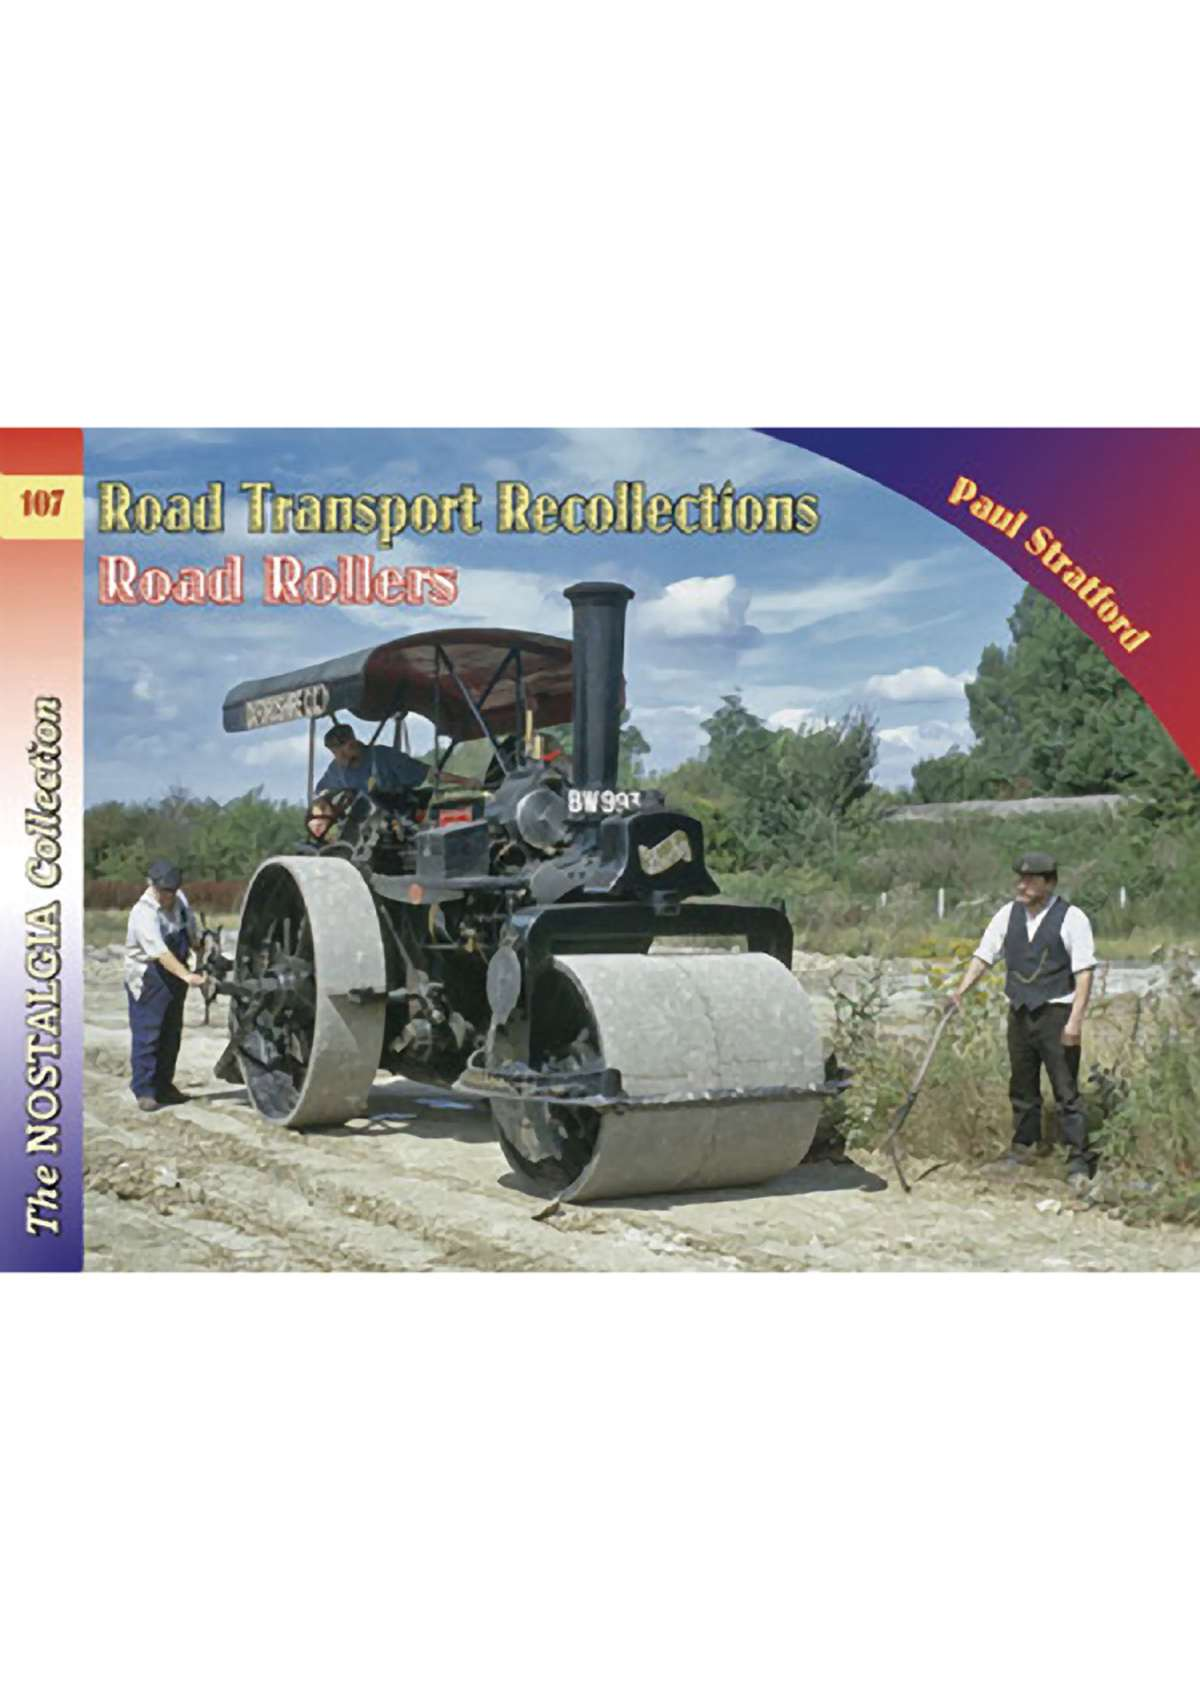 5539 - Vol 107 Road Transport Recollections: Road Rollers